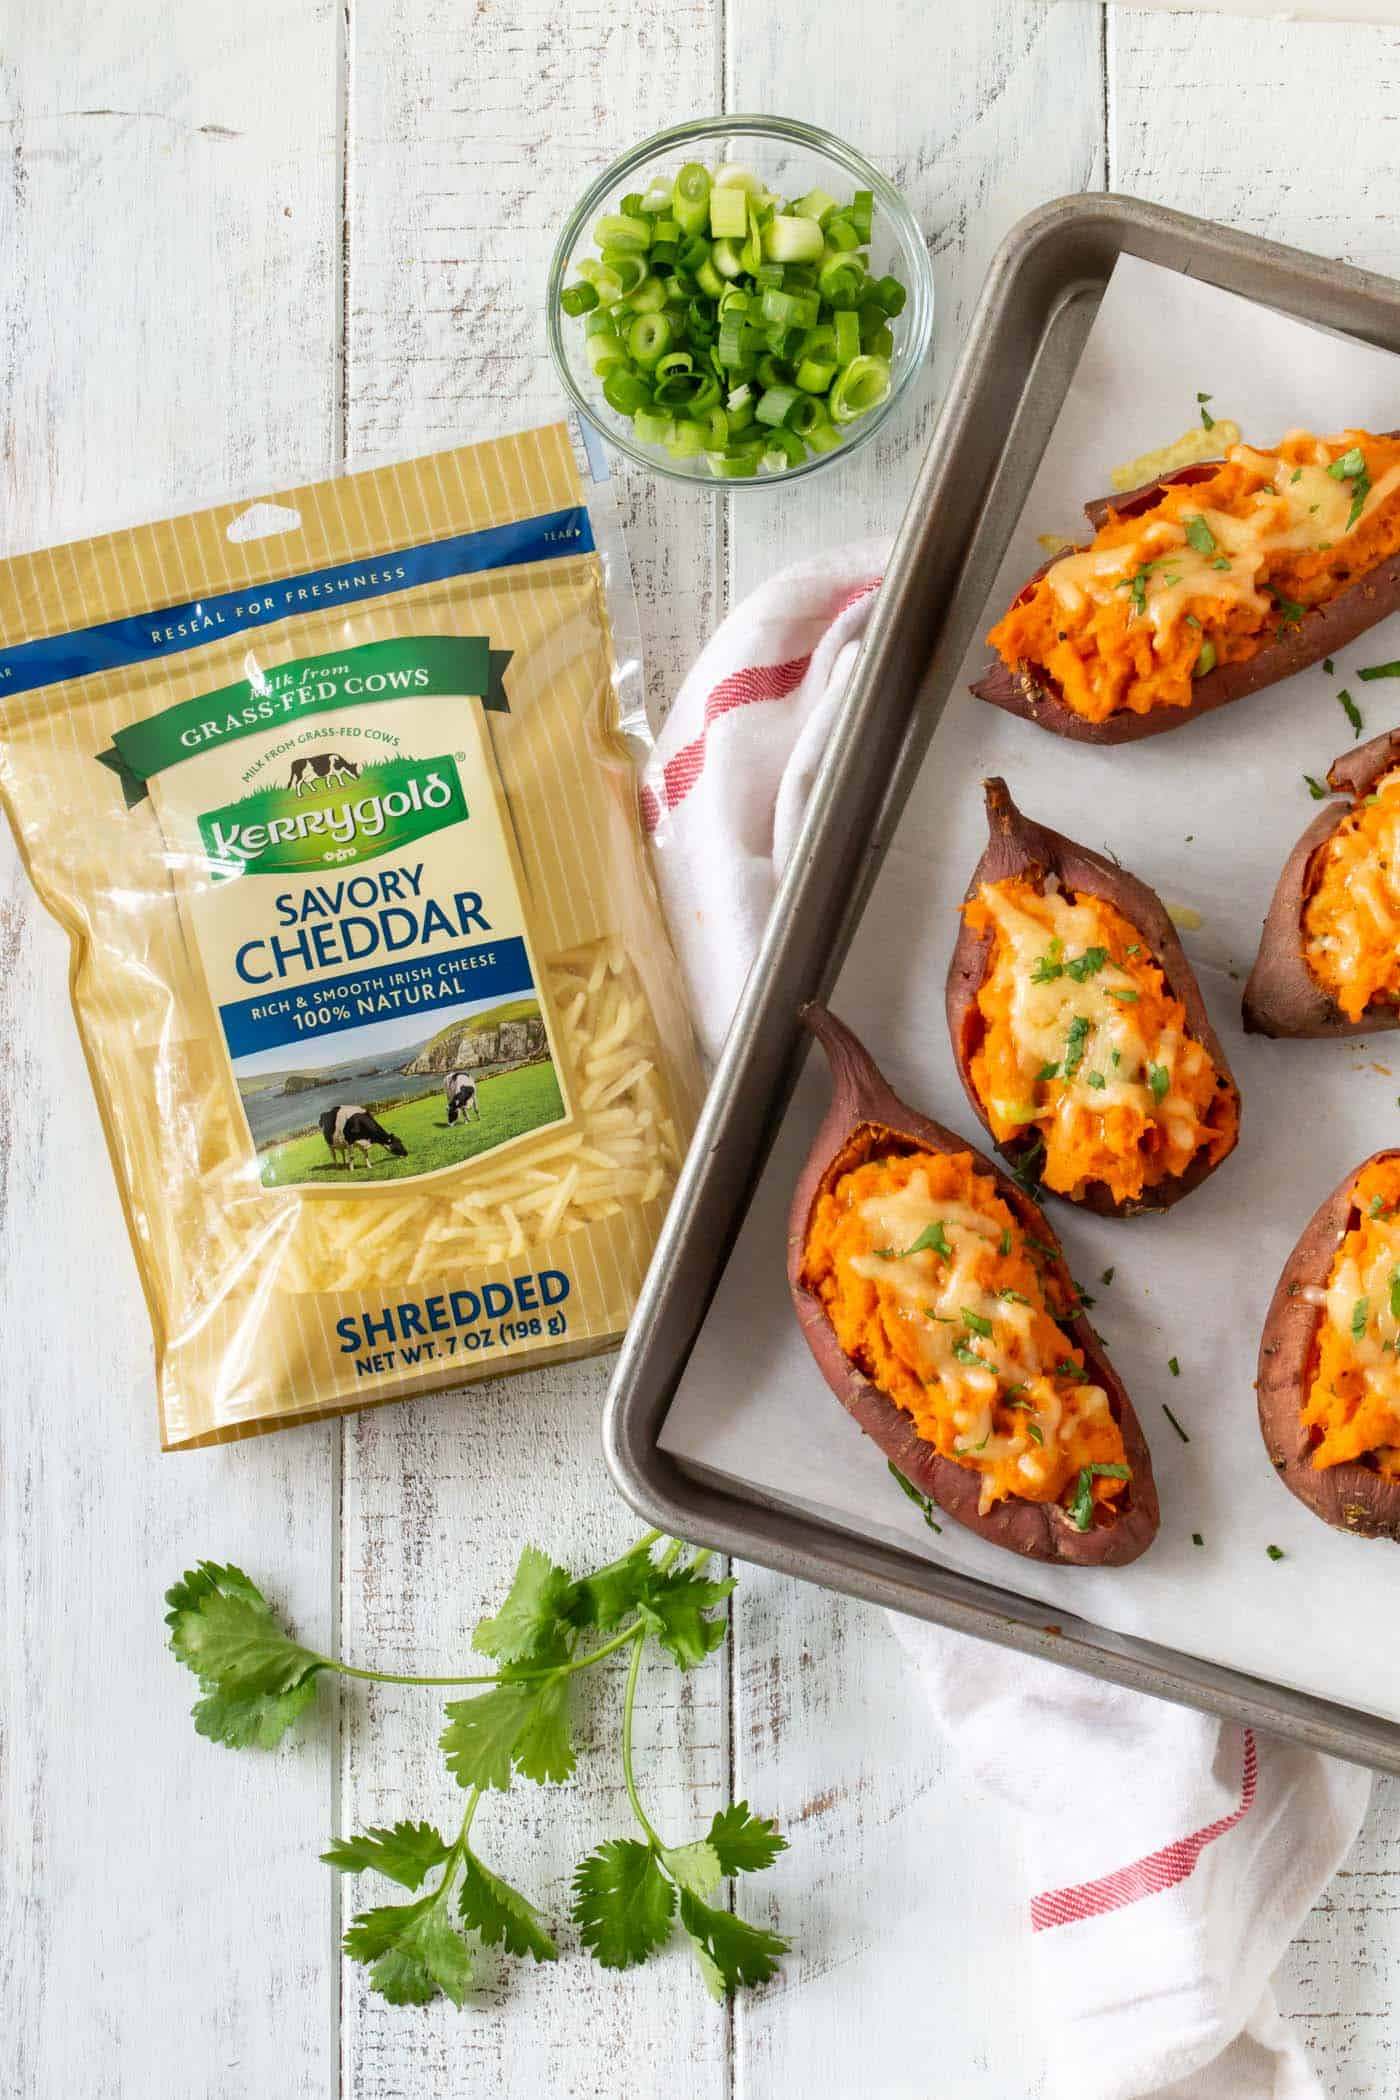 Top down image of Cheesy Chipotle Twice Baked Sweet Potatoes on Baking tray.